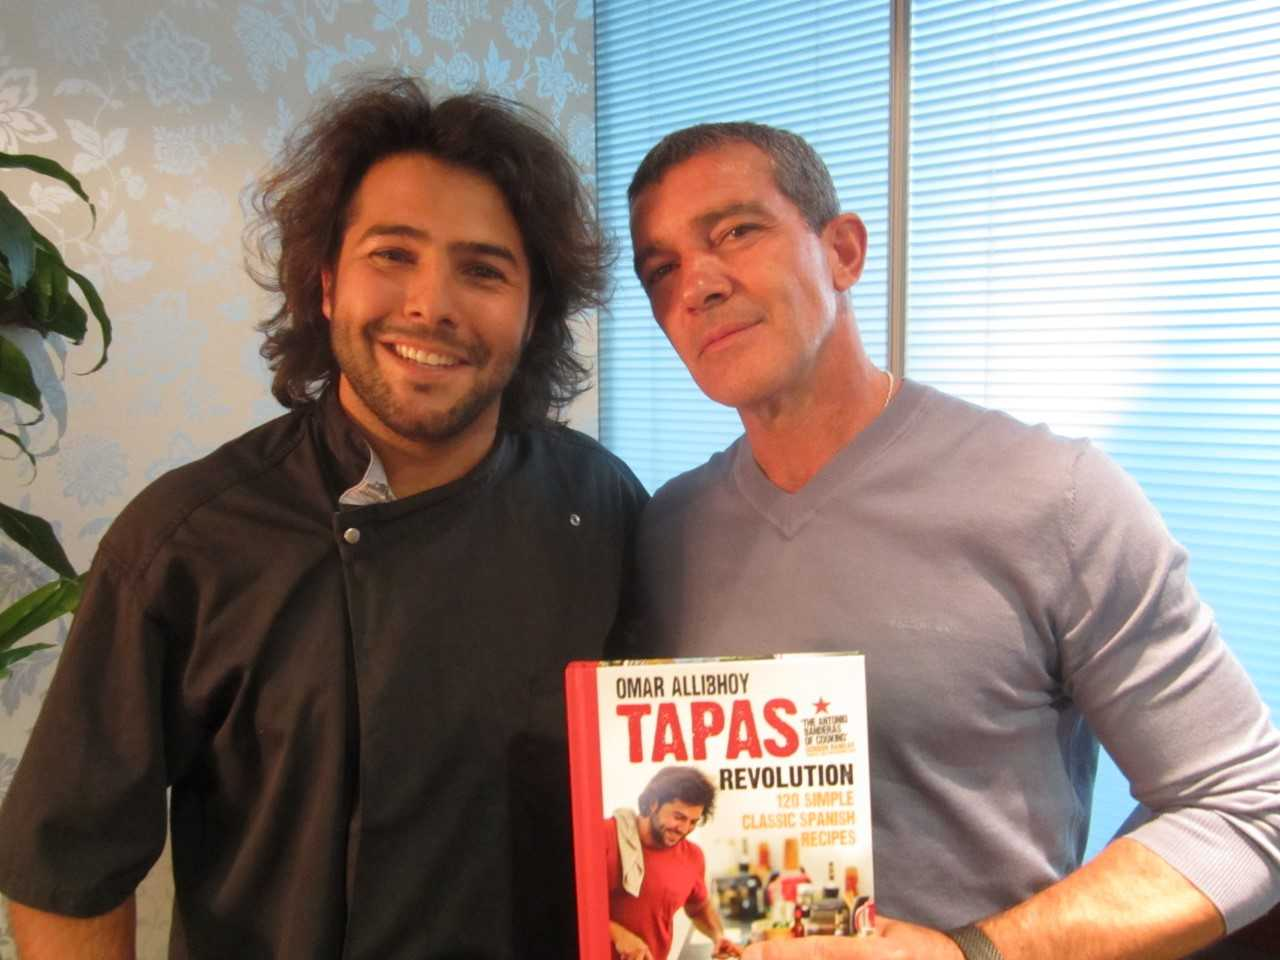 New Hollywood film Life Itself starring Antonio Banderas teams up with Spanish Chef Omar Allibhoy & Tapas Revolution for Paella Month in January